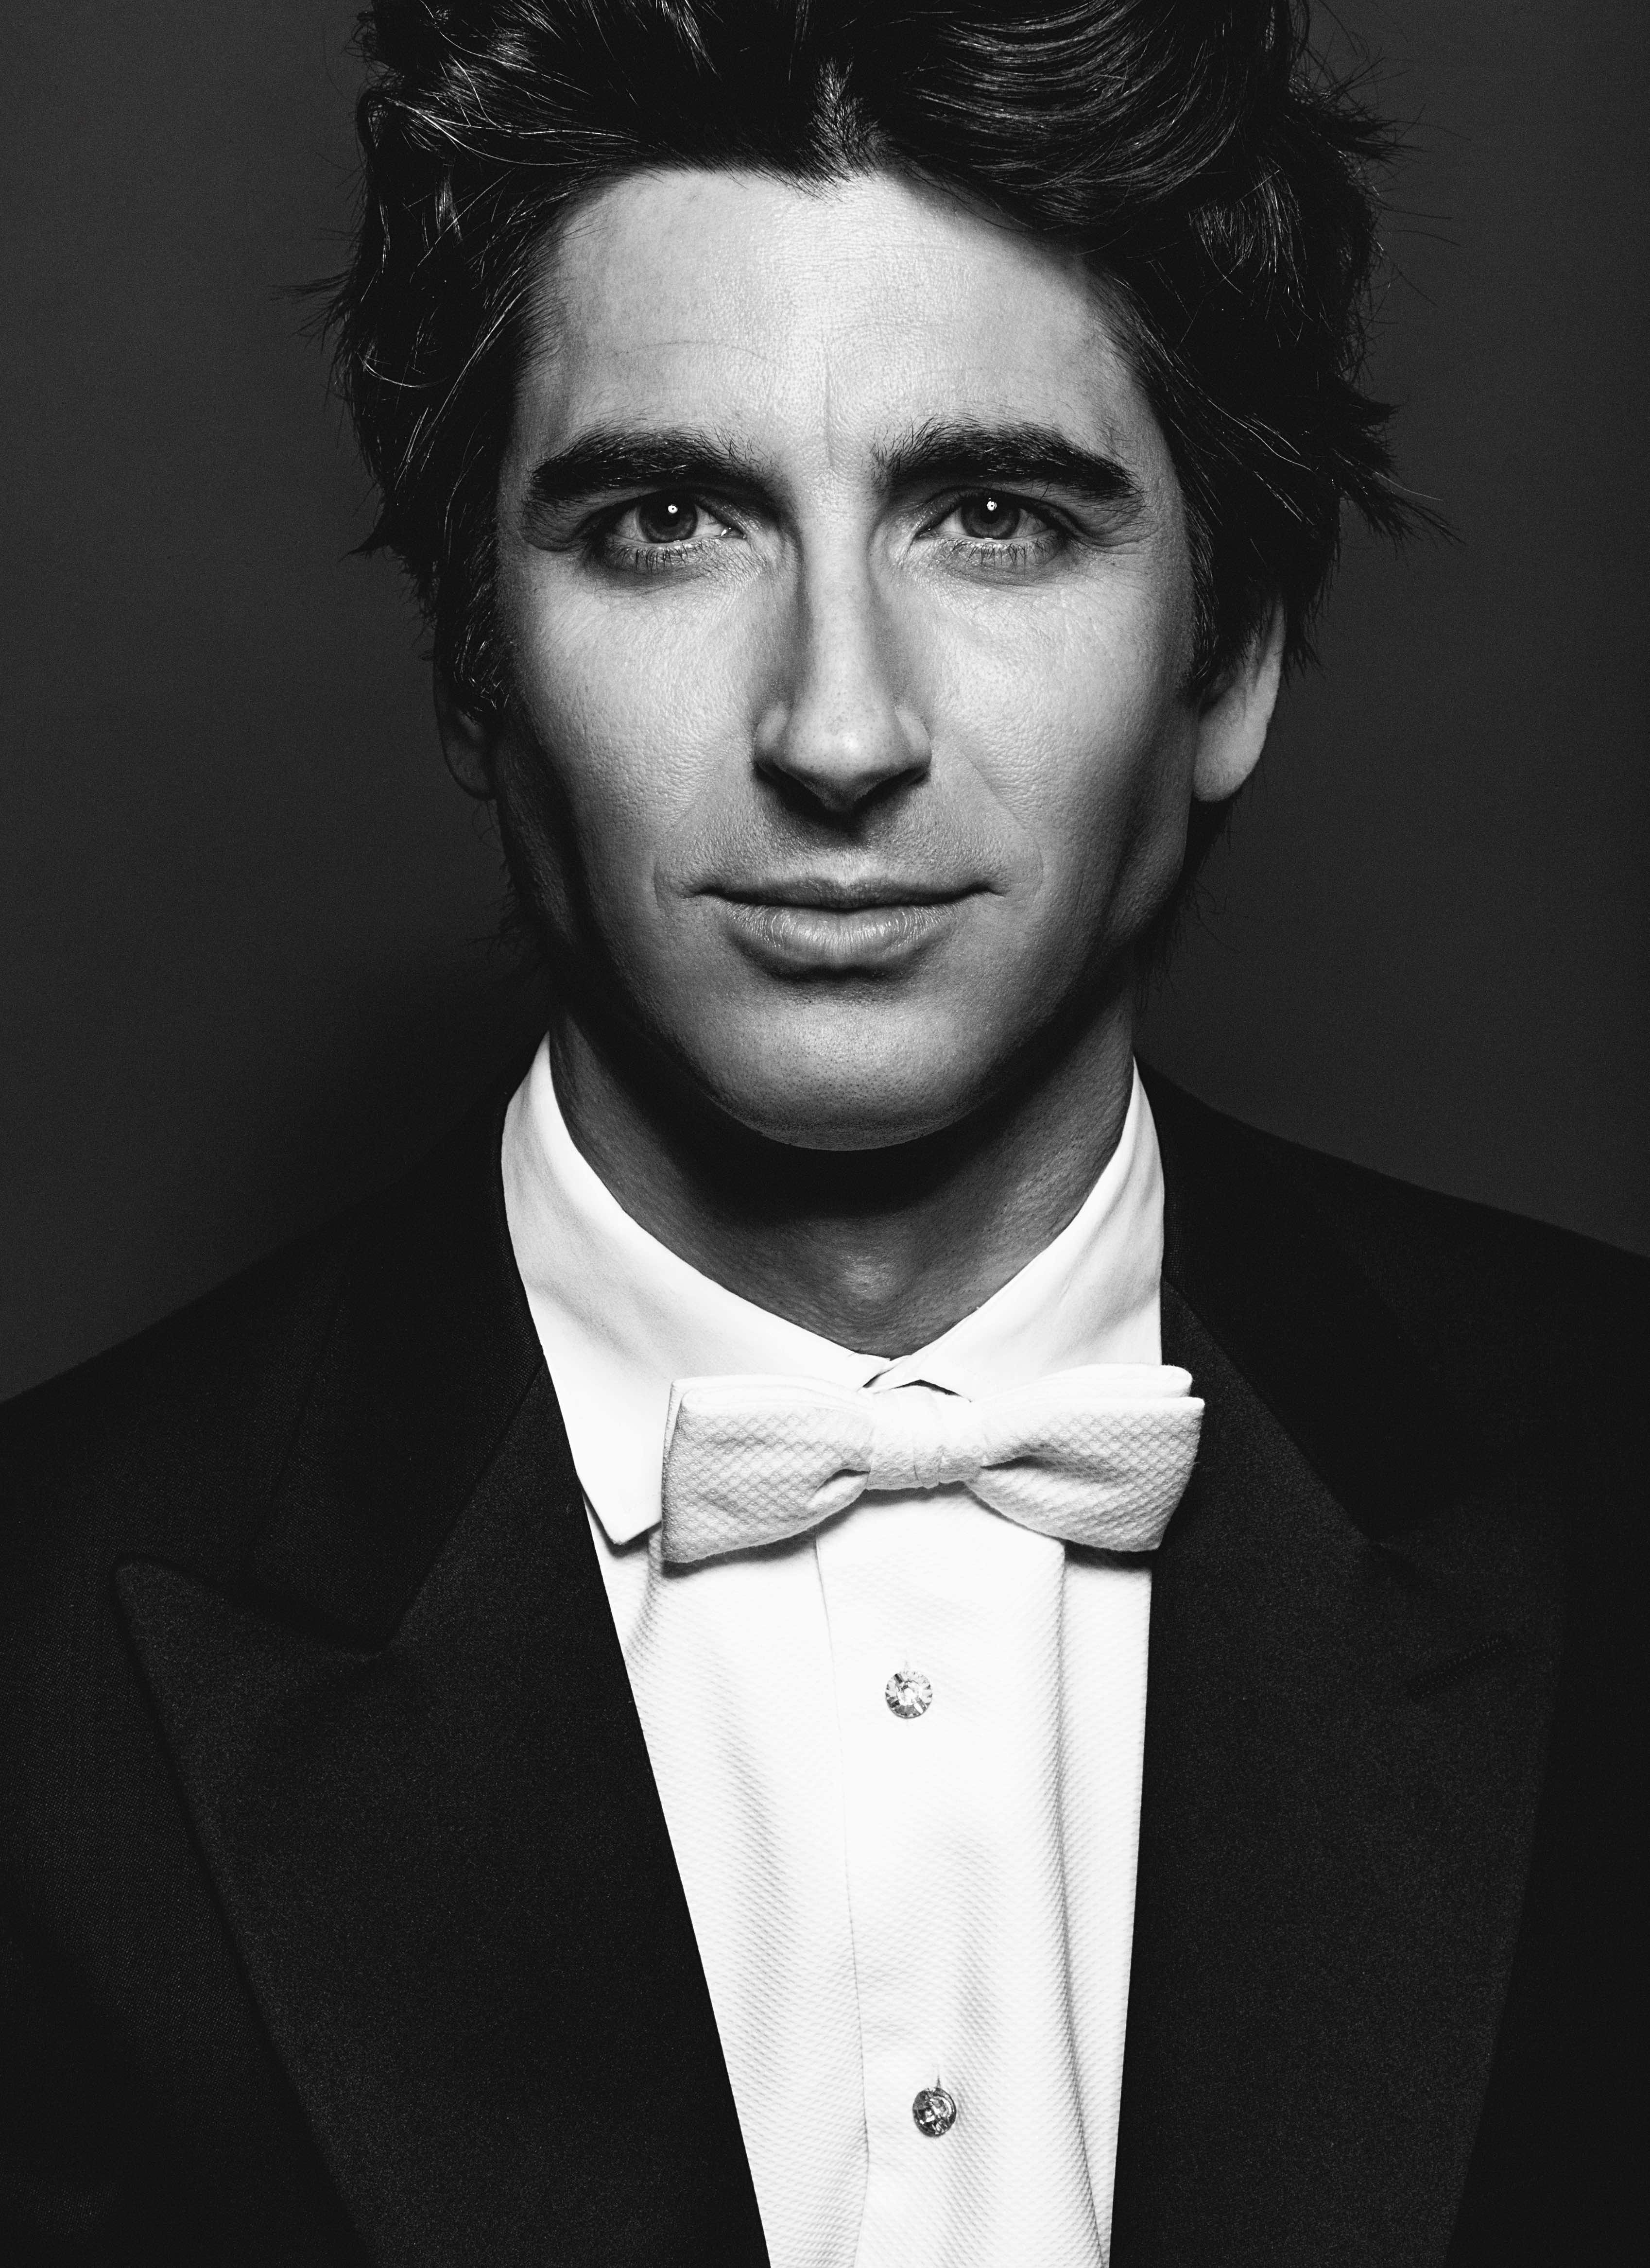 Pablo Amorós is set to perform at From Spain With Love, the glamourous gala being held in Abu Dhabi